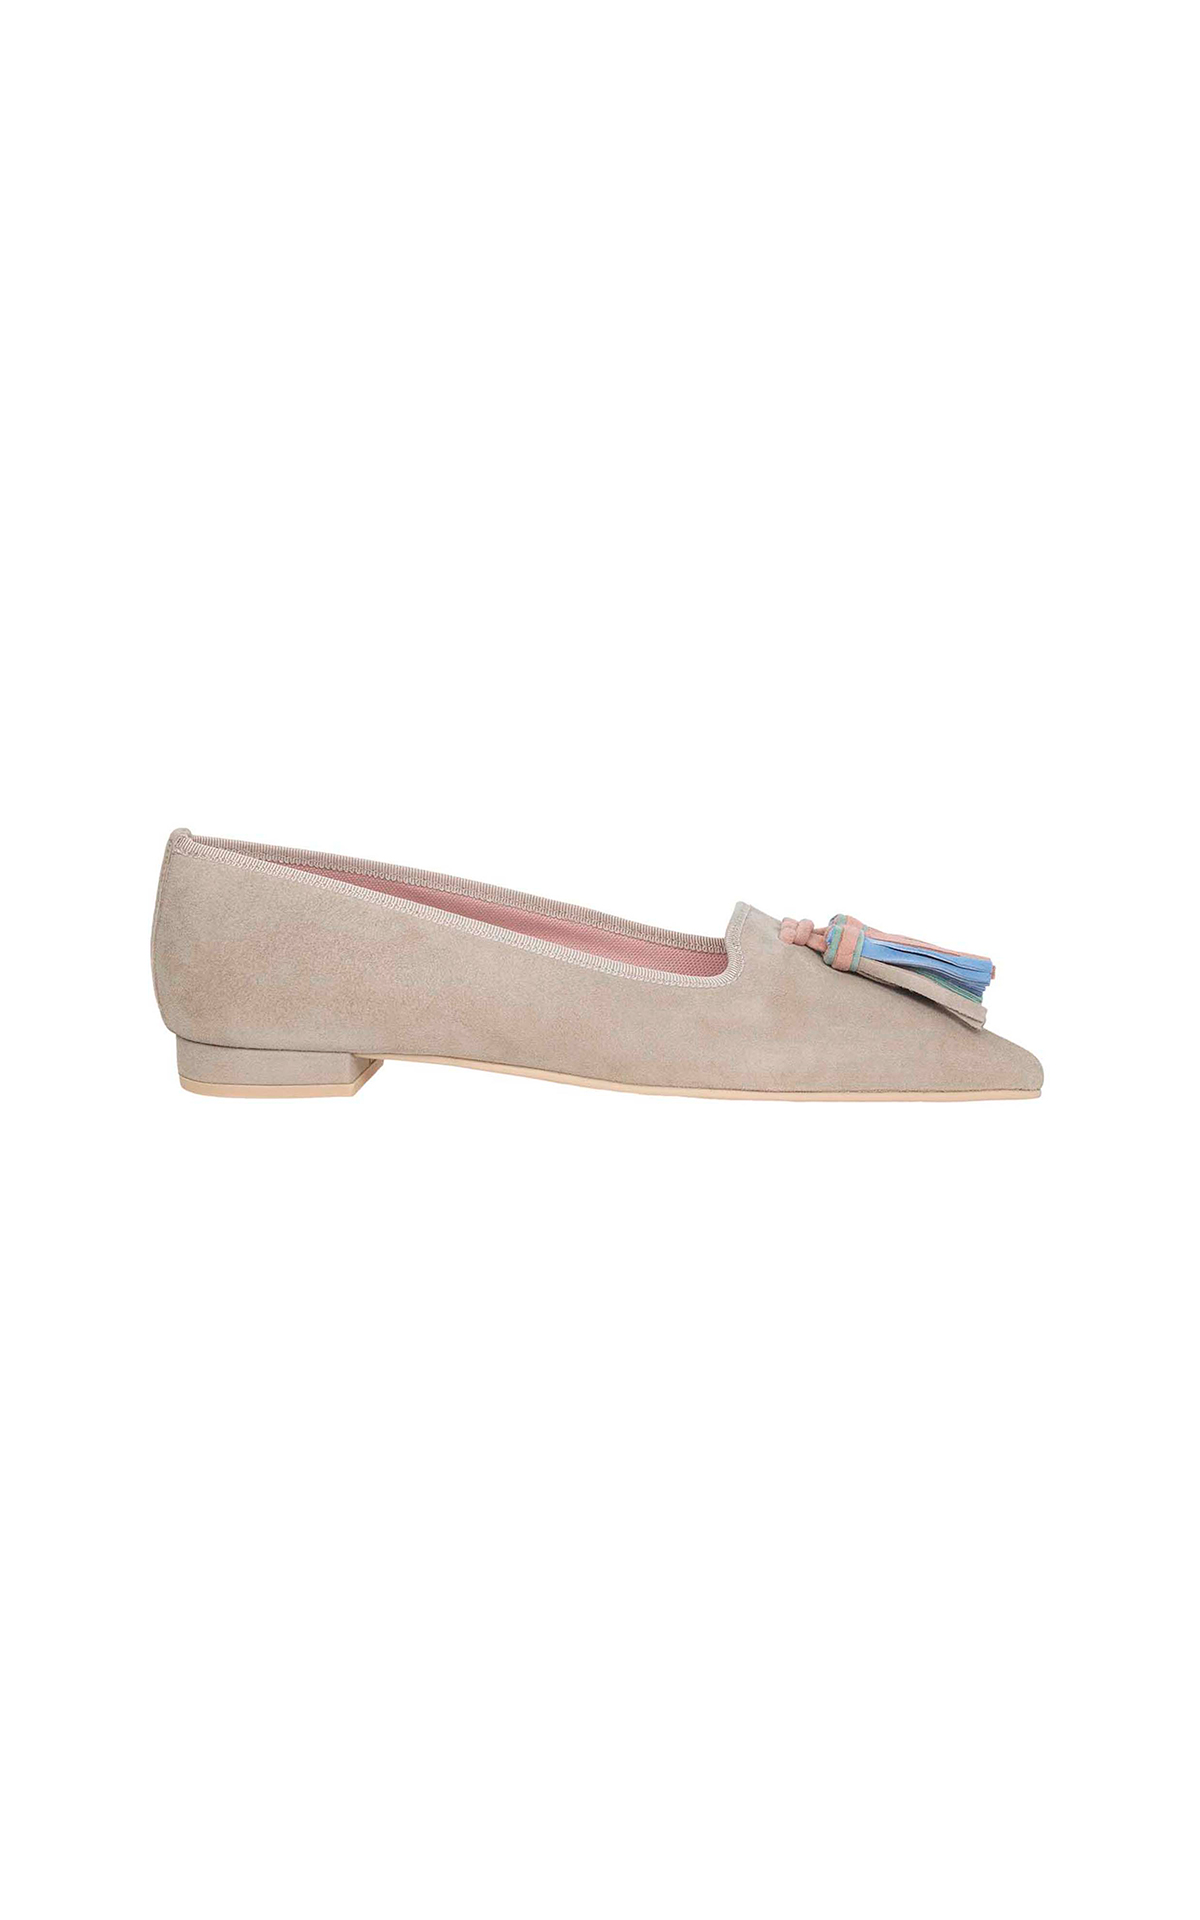 Beige slipper Pretty Ballerinas